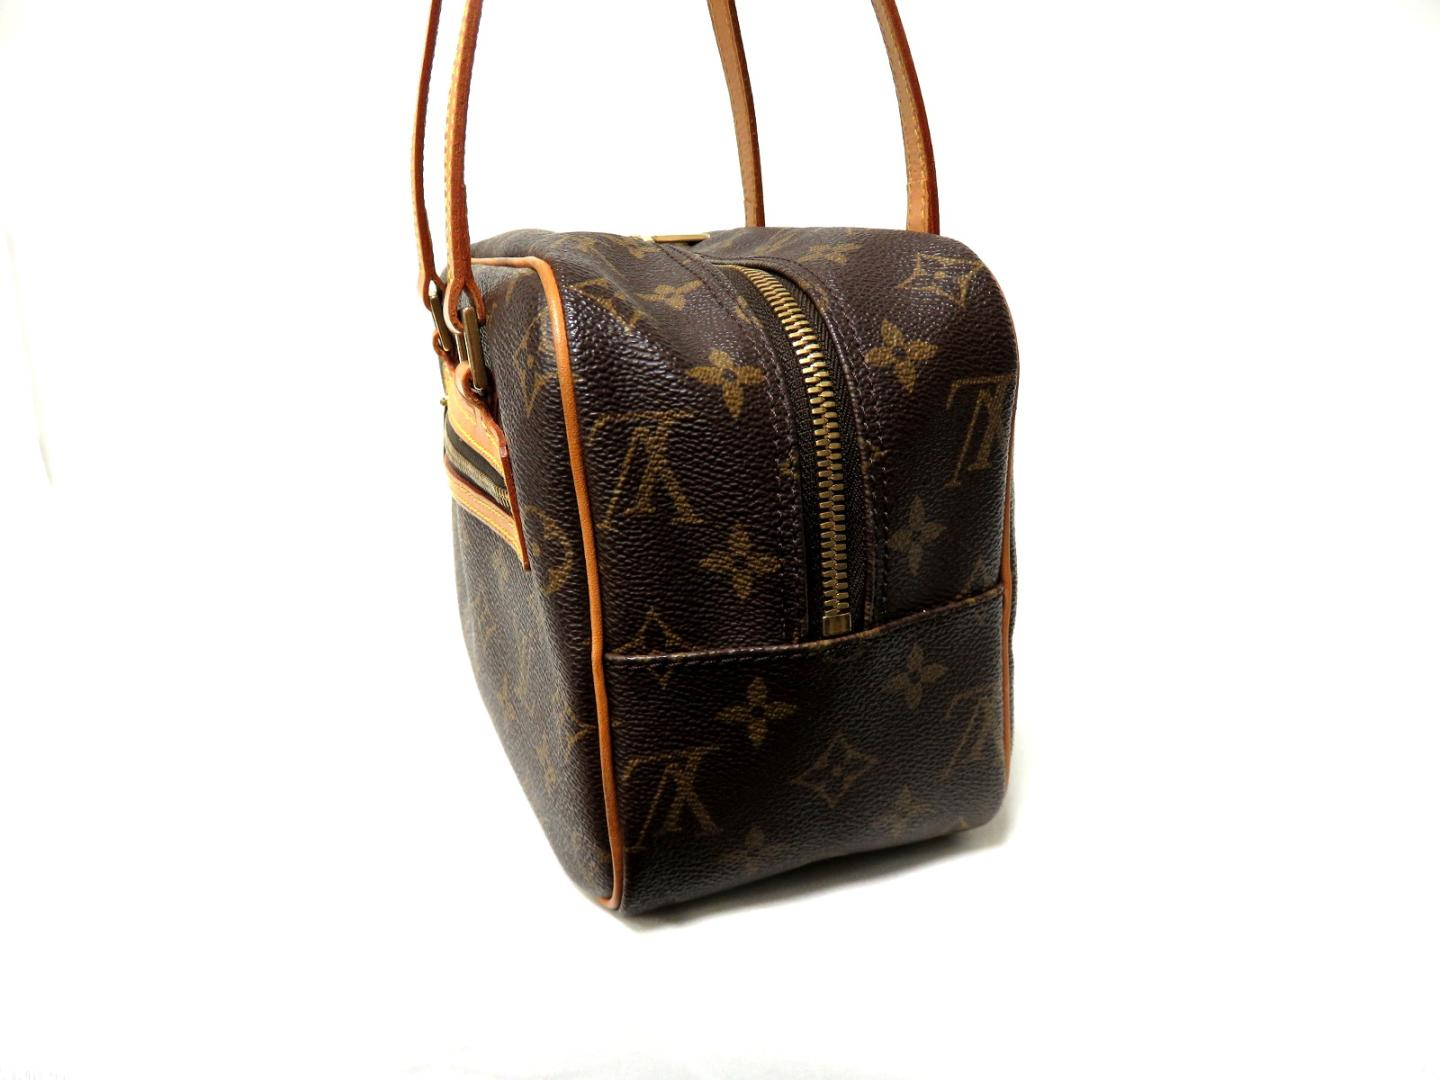 9585b990f993 BRANDOFF  Authentic LOUIS VUITTON Cite MM Shoulder Bag M51182 ...